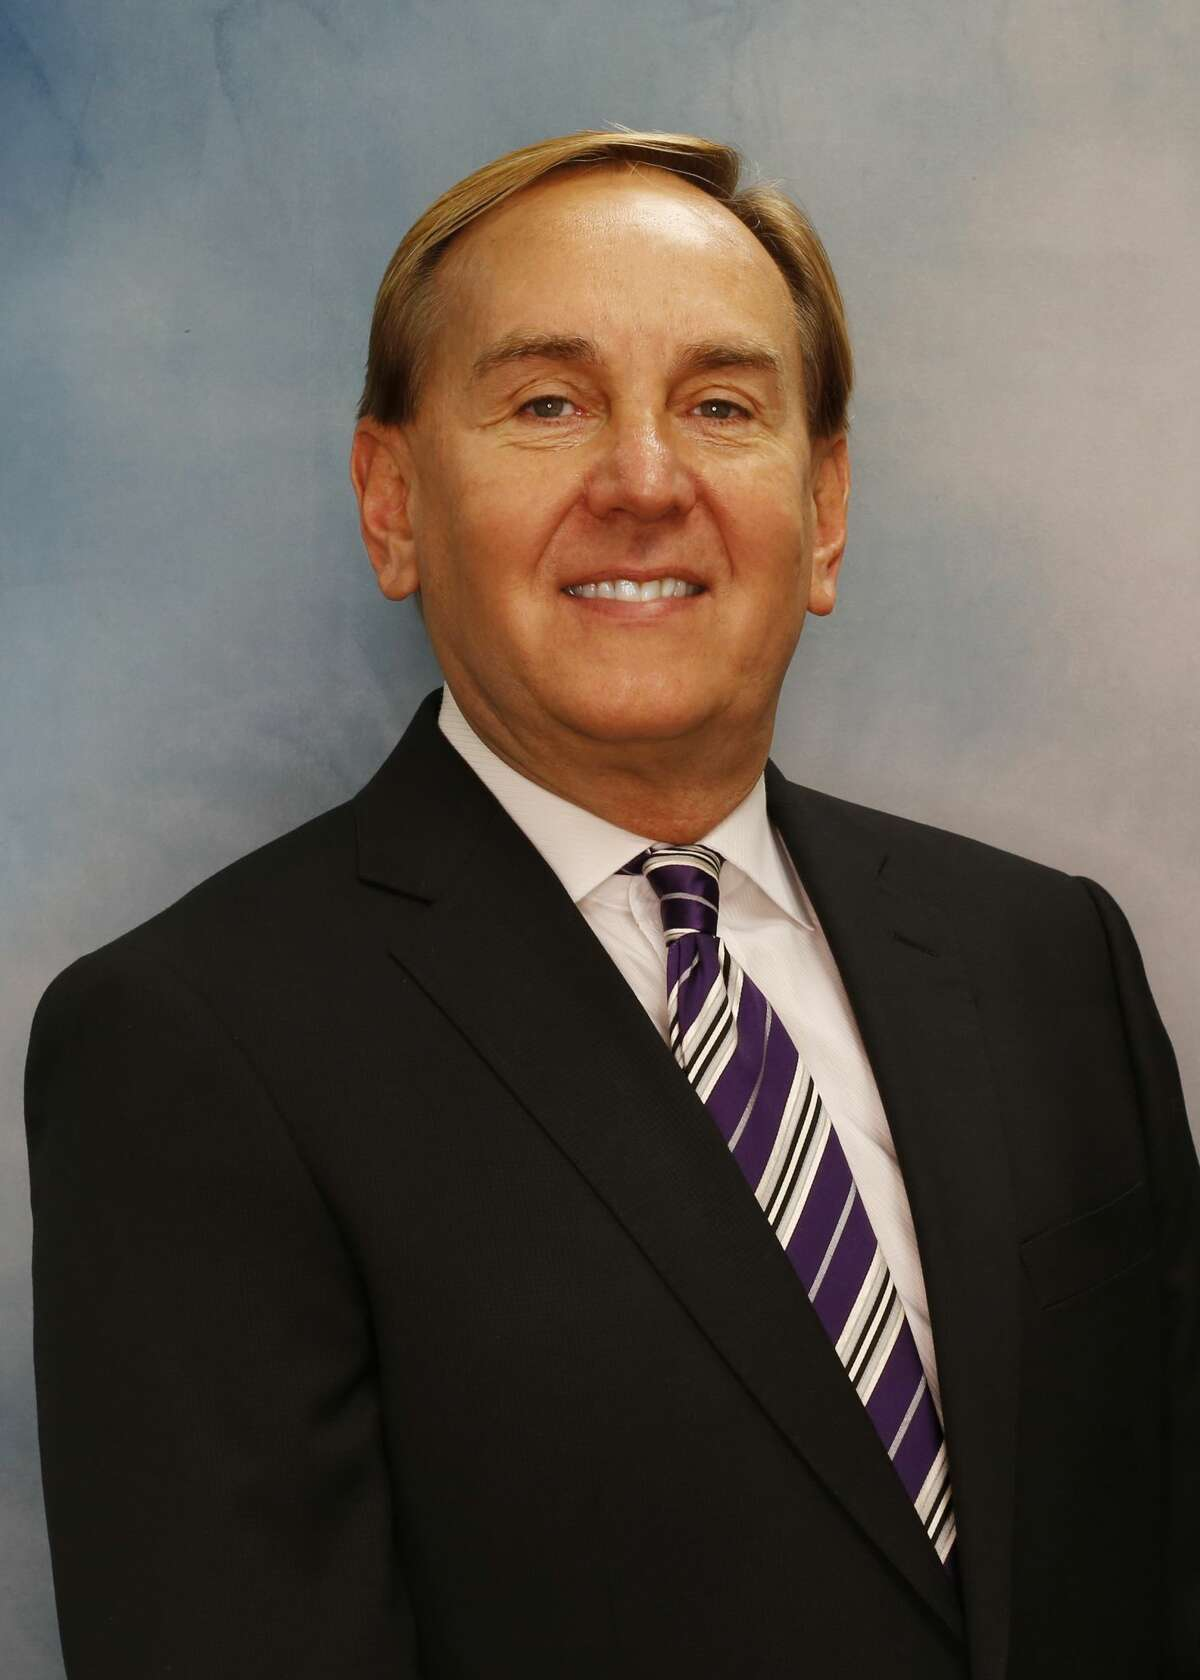 John Willis is the president and CEO of the Texas Moving, and Willis Permian Movers. He is the immediate past chair of the Texas Trucking Association and a former chair of the Southwest Movers Association.